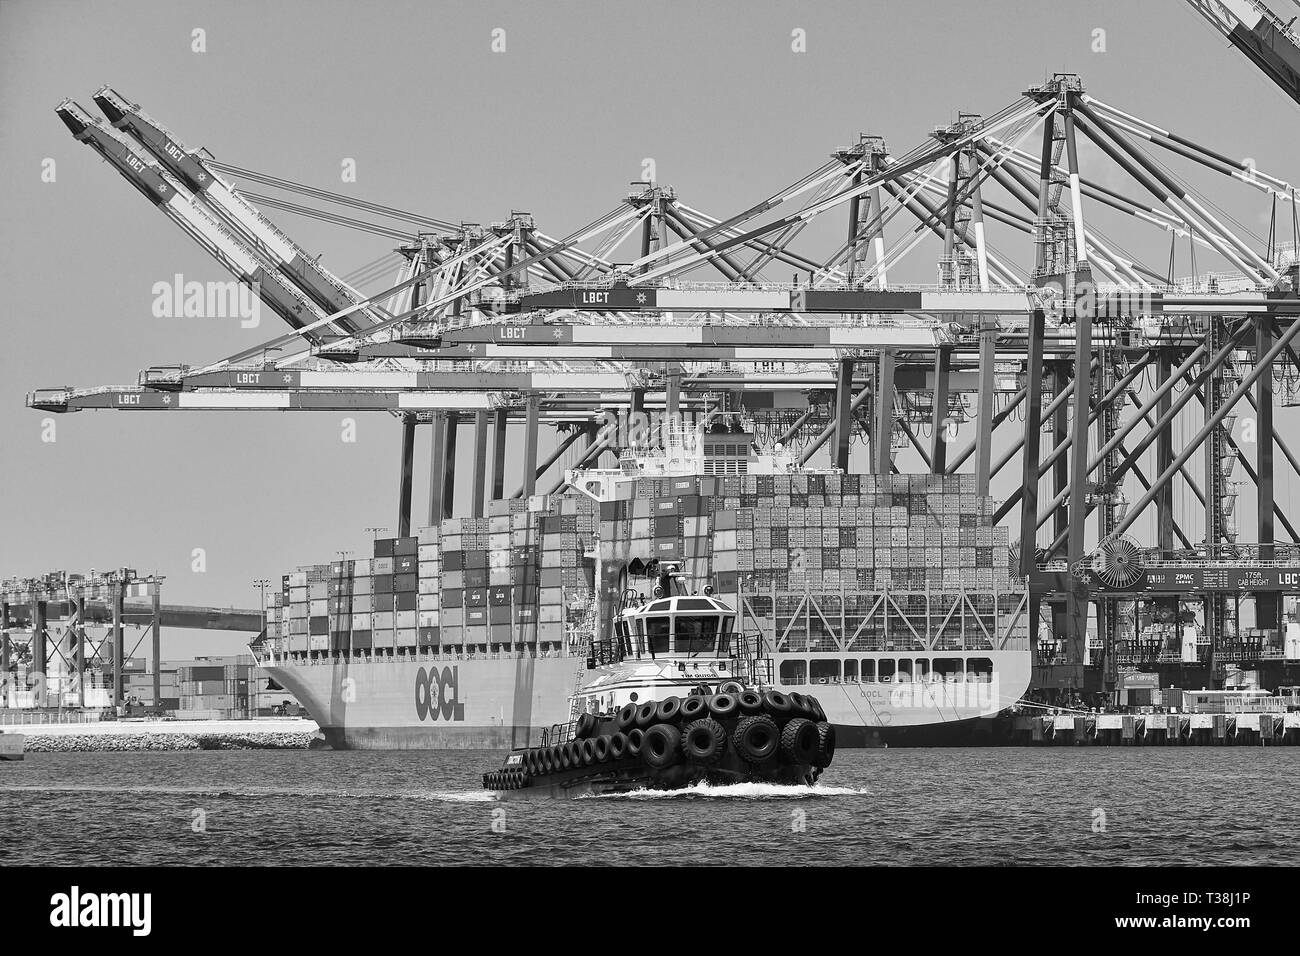 Millennium Maritime Tractor Tug, TIM QUIGG Passes The Container Ship, OOCL TAIPAI, Unloading In The Long Beach Container Terminal, California. USA. - Stock Image